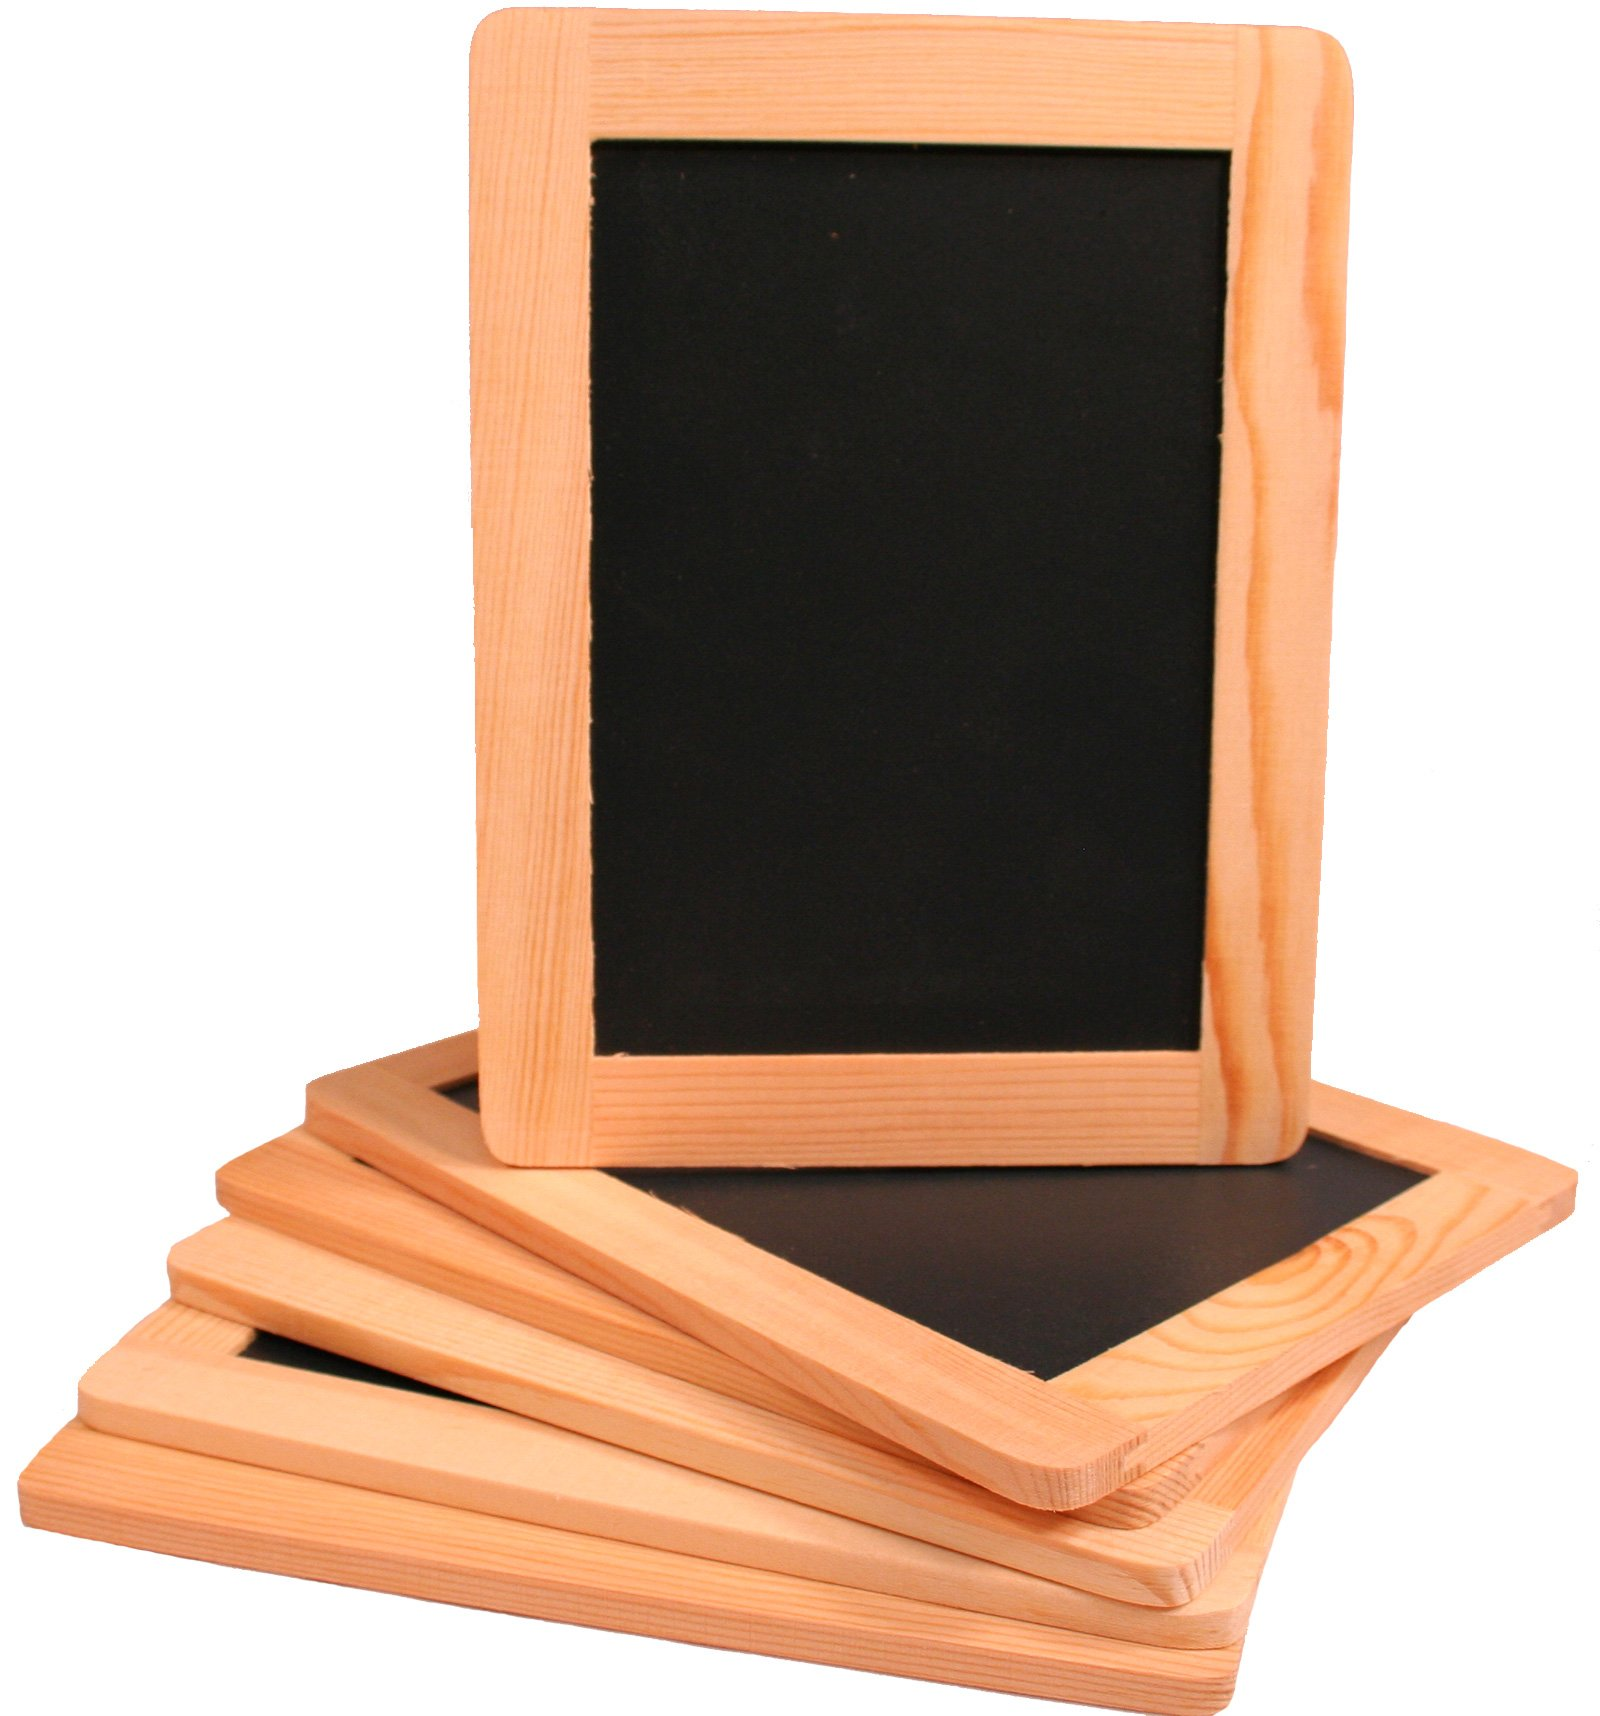 Creative Hobbies Synthetic Chalkboard With Unfinished Wood Frame, 4 x 6 Inch -Pack of 6 Chalkboards